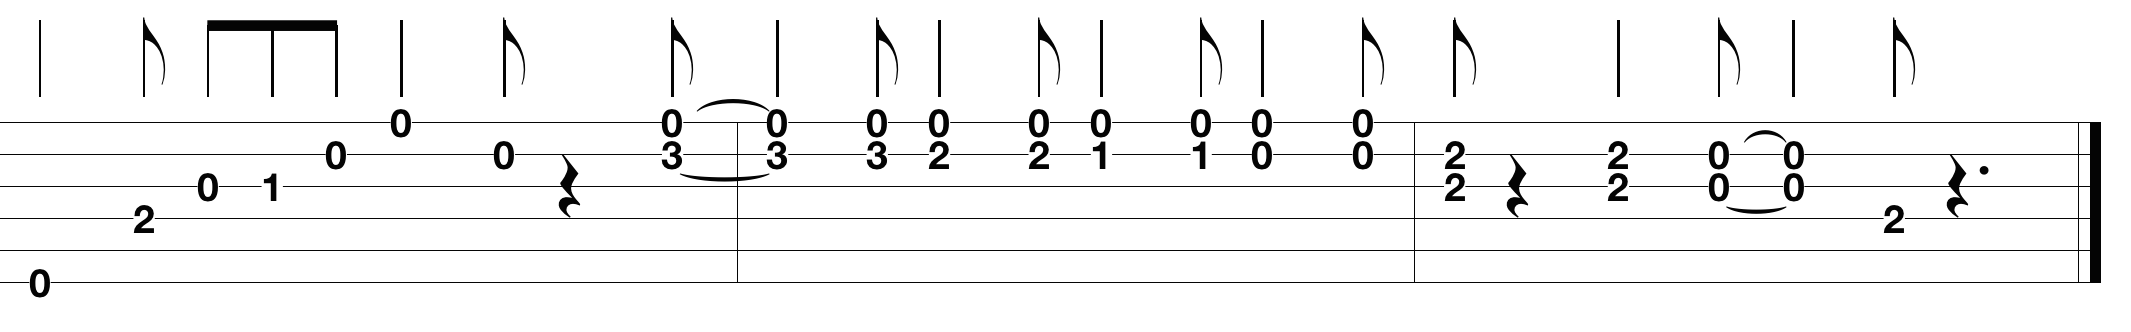 online-blues-guitar-lessons_3.png